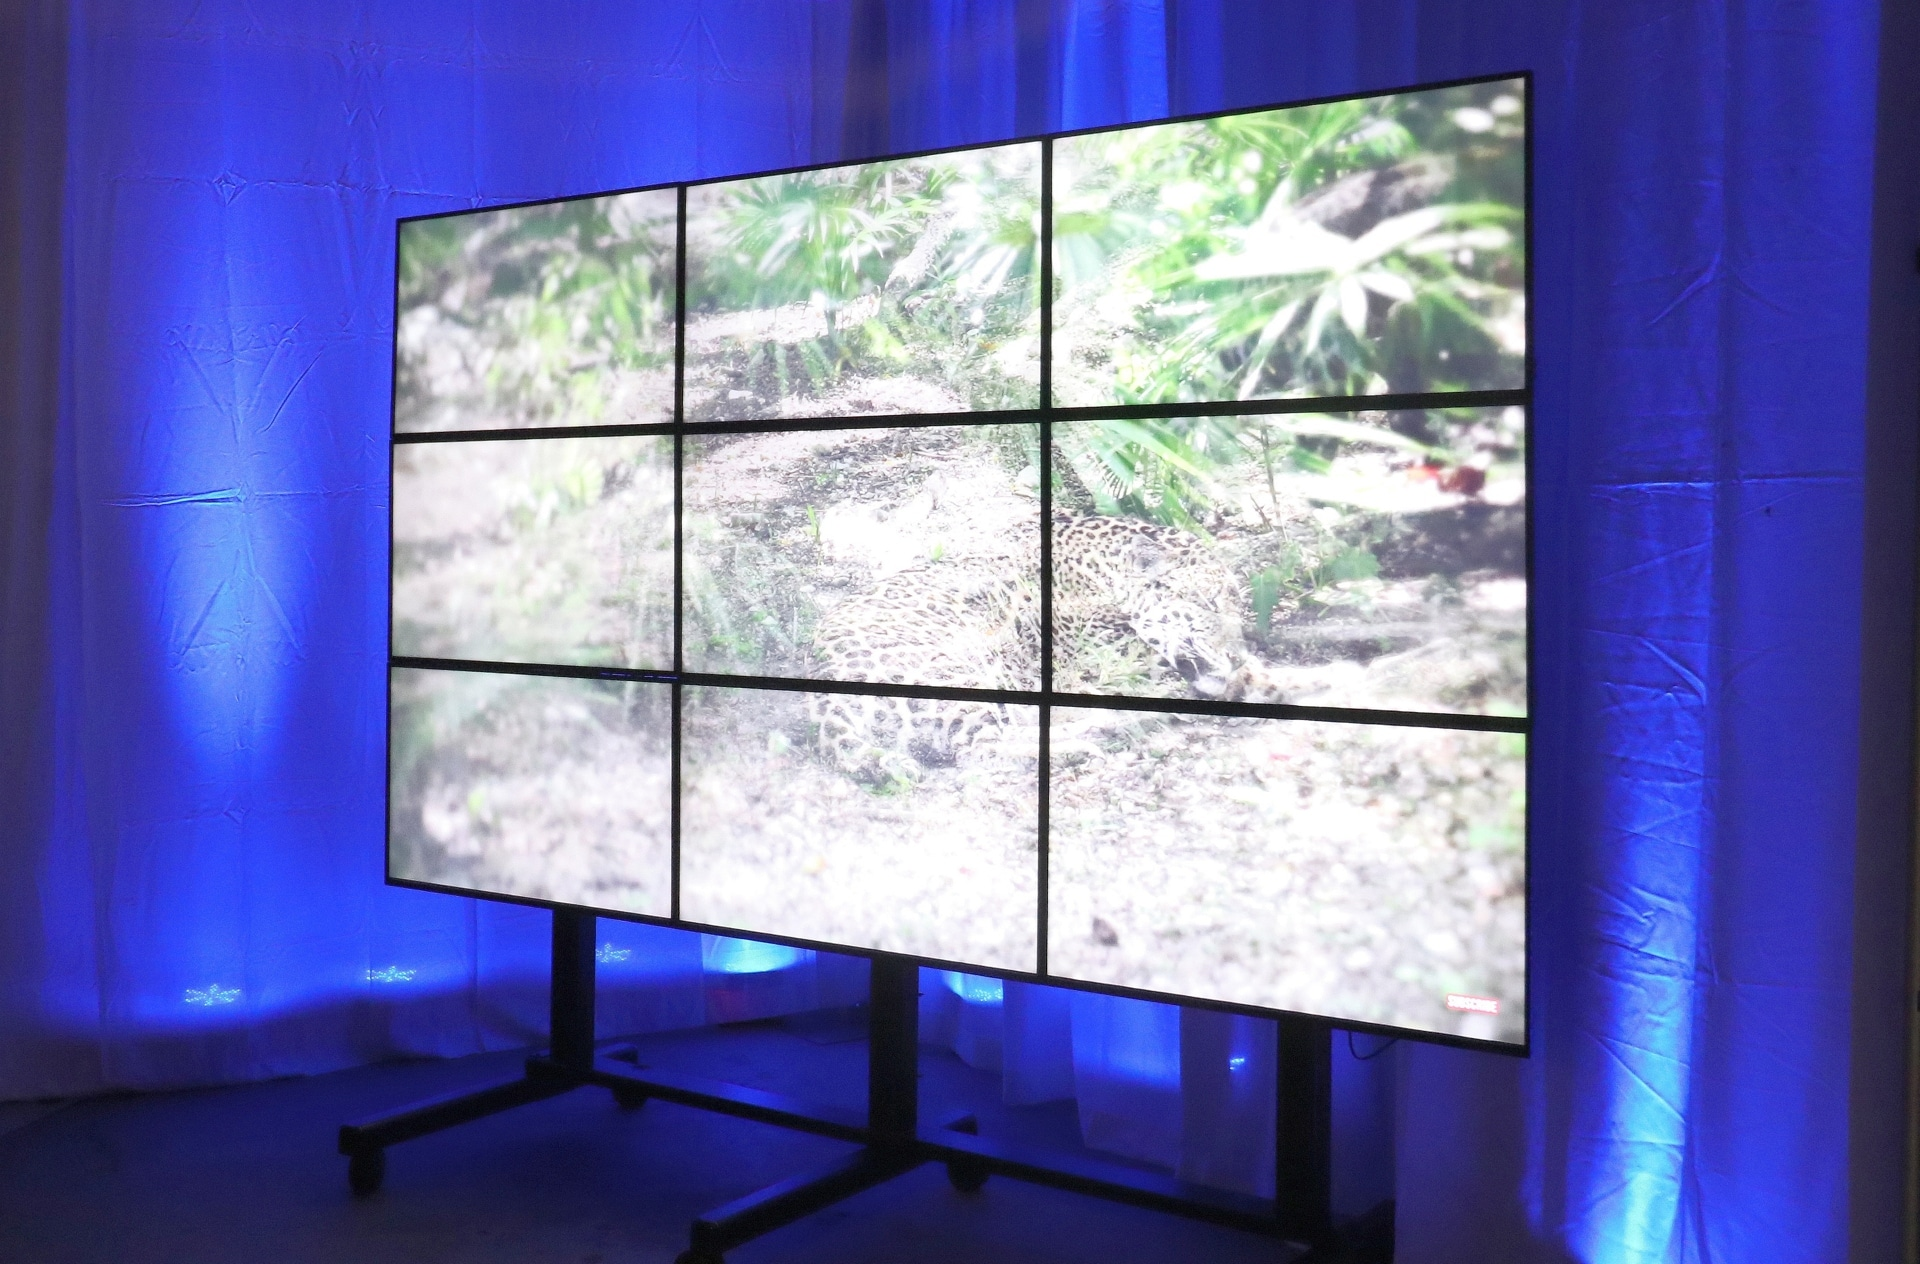 videowall, video wall, video wall display, videowall display, 3x3 video wall, 3x3, 3x3 videowall display, 3x3 video wall display